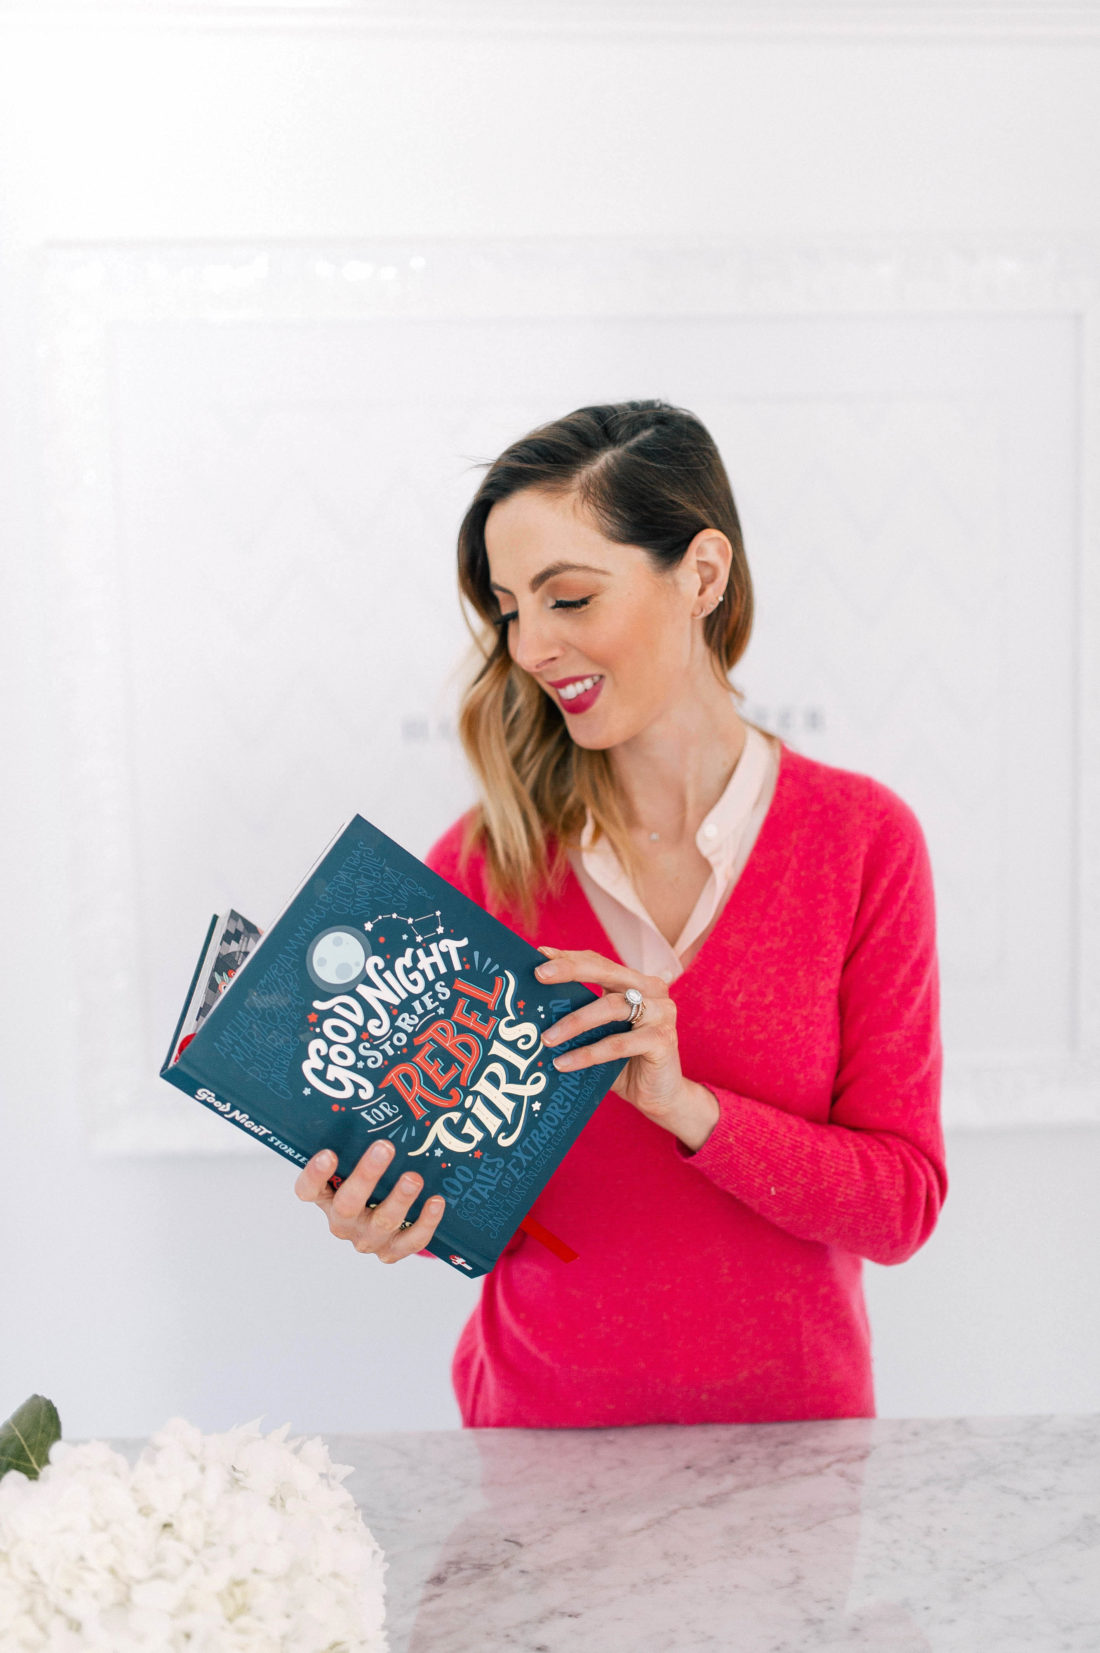 Eva Amurri Martino reads through the Goodnight Stories For Rebel girls book